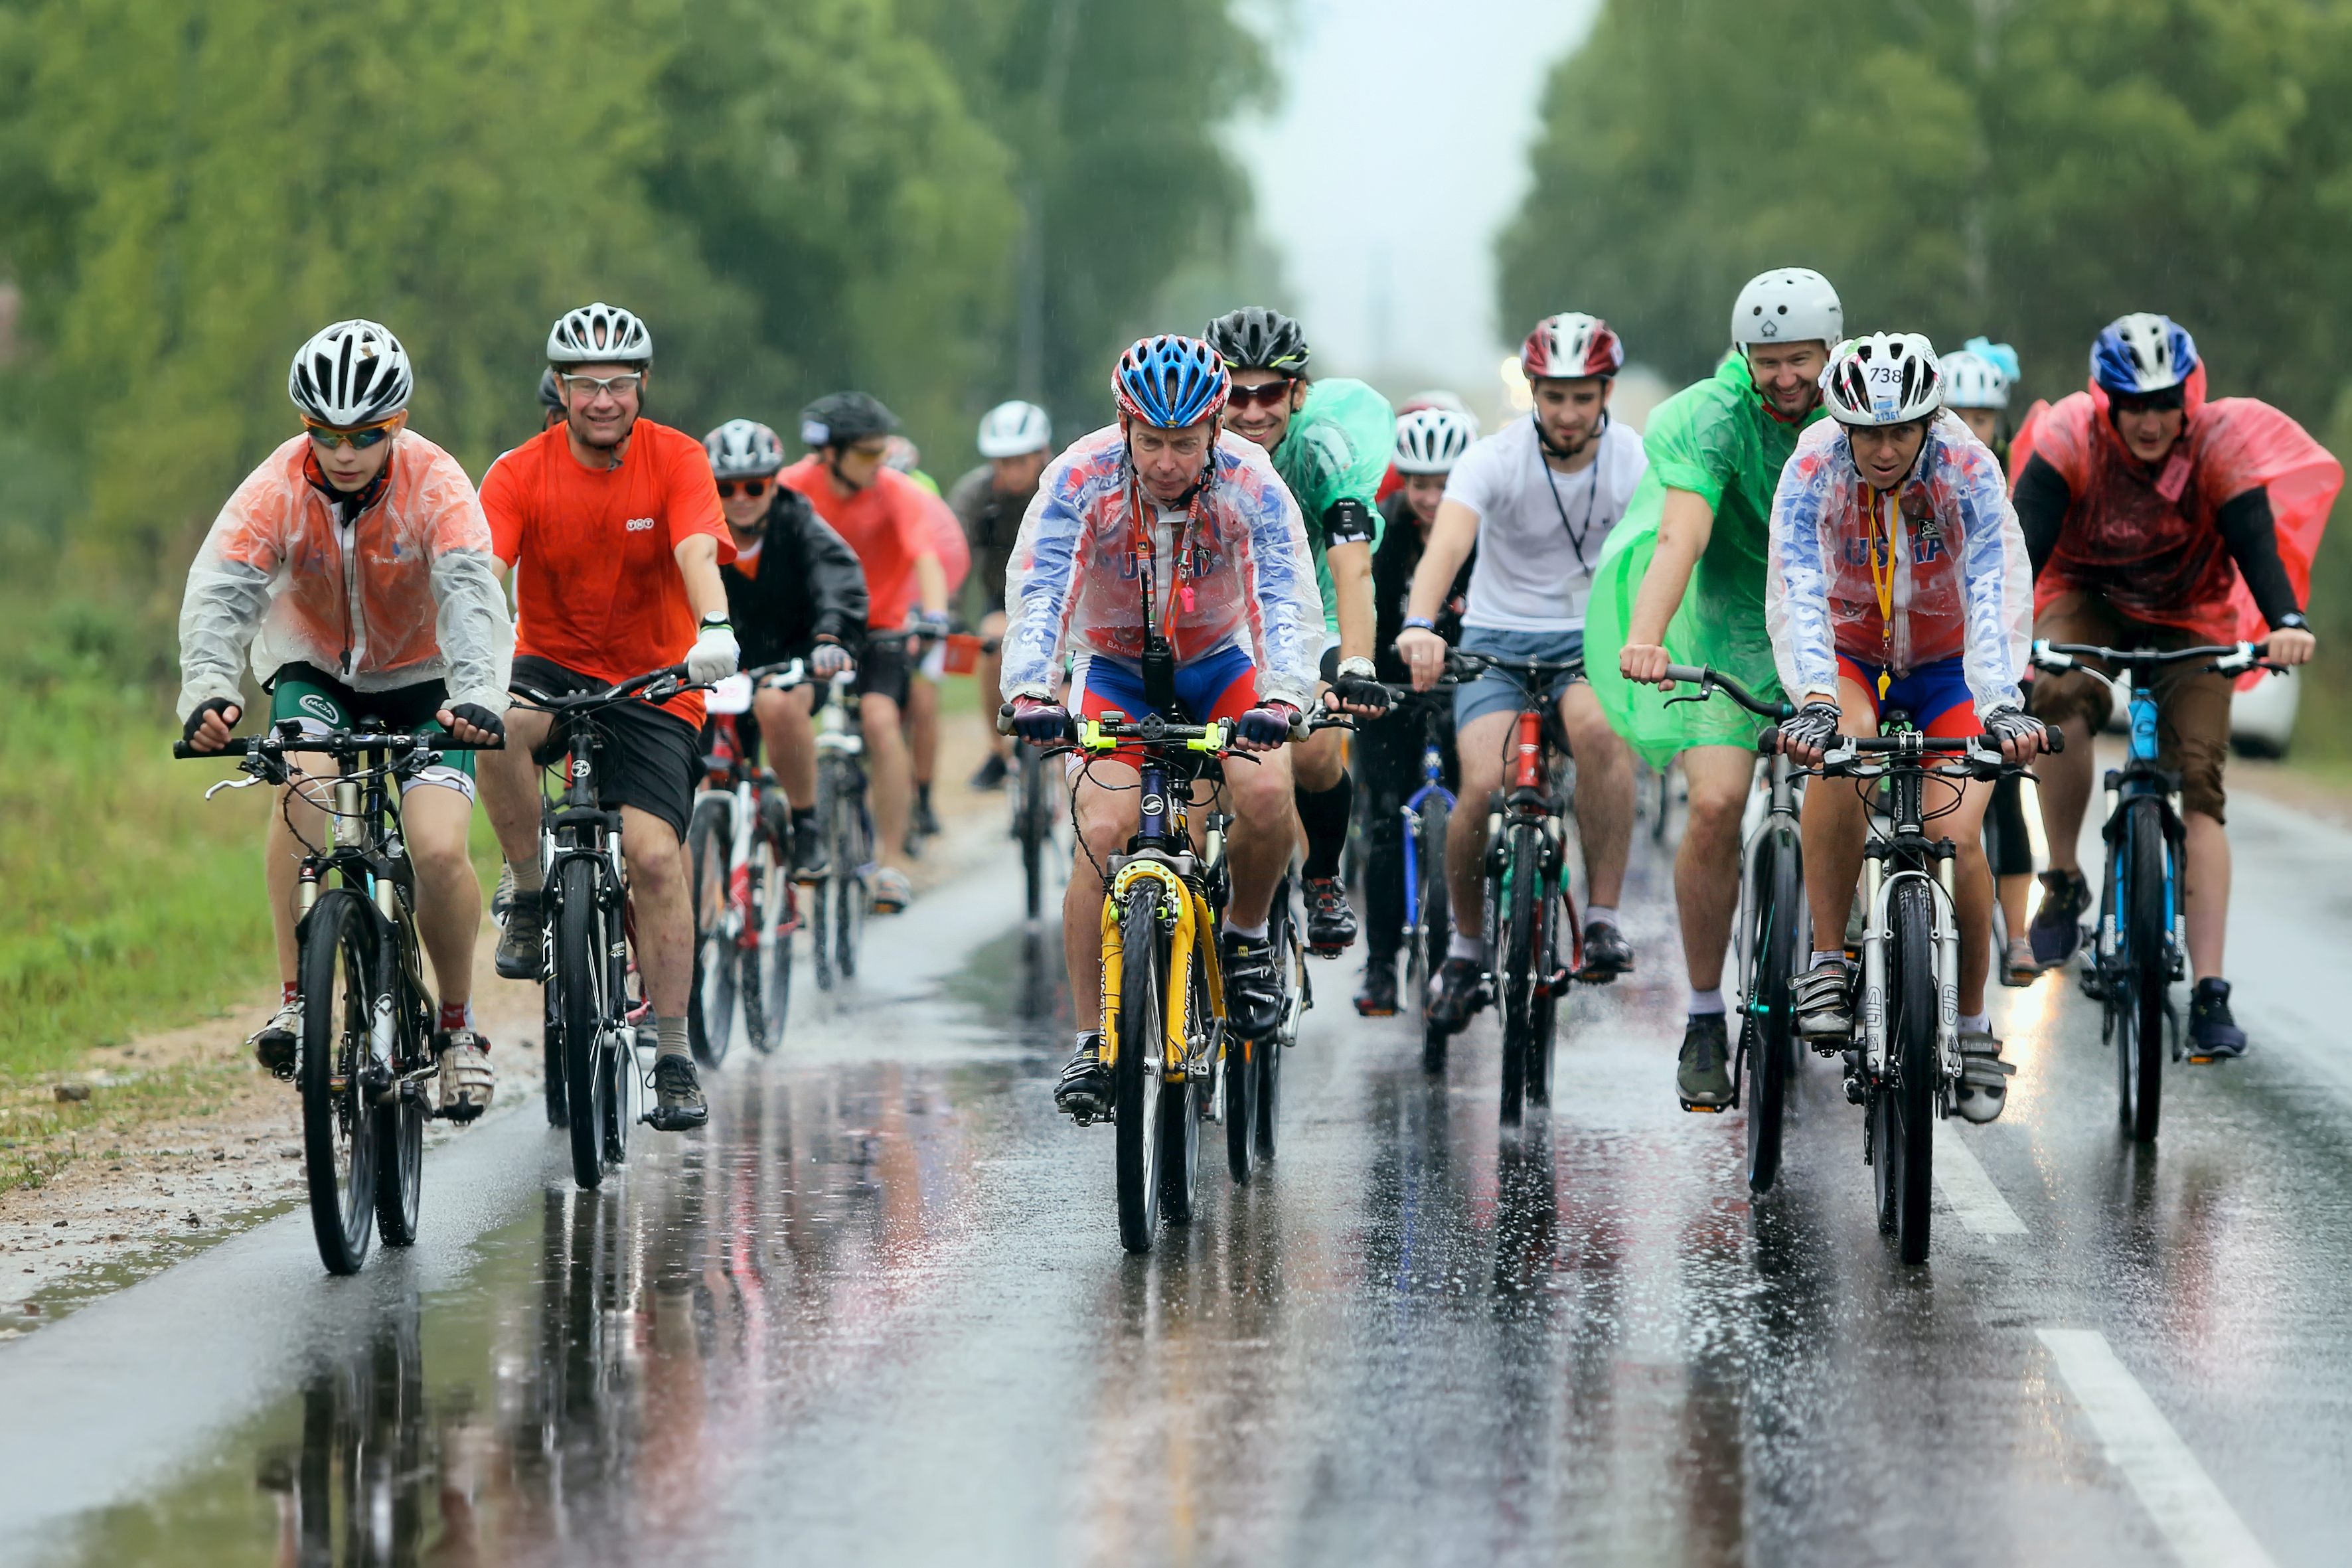 "MOSCOW, RUSSIA -€"" AUGUST 22: Charitable bicycle race from Kaluga to Moscow on August 22, 2014 .Russia. Cyclists compete in the rain"